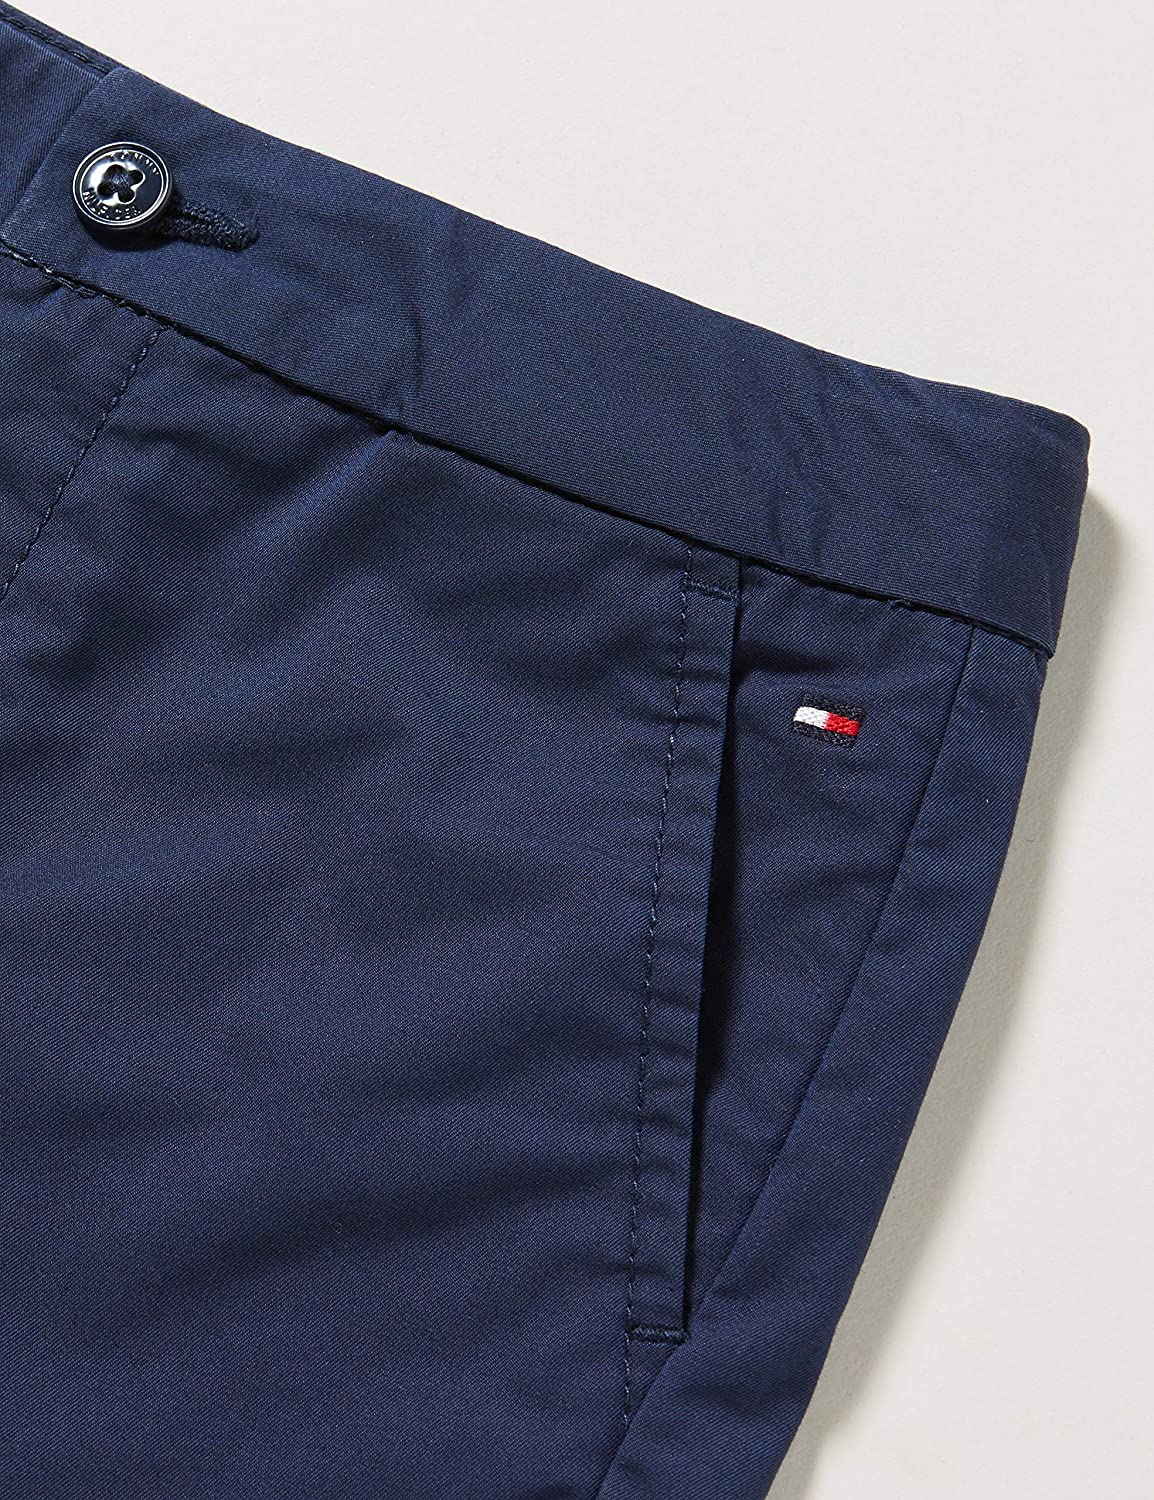 Tommy Hilfiger TH Cool Essential Woven Shorts Pantaloncini Bambina